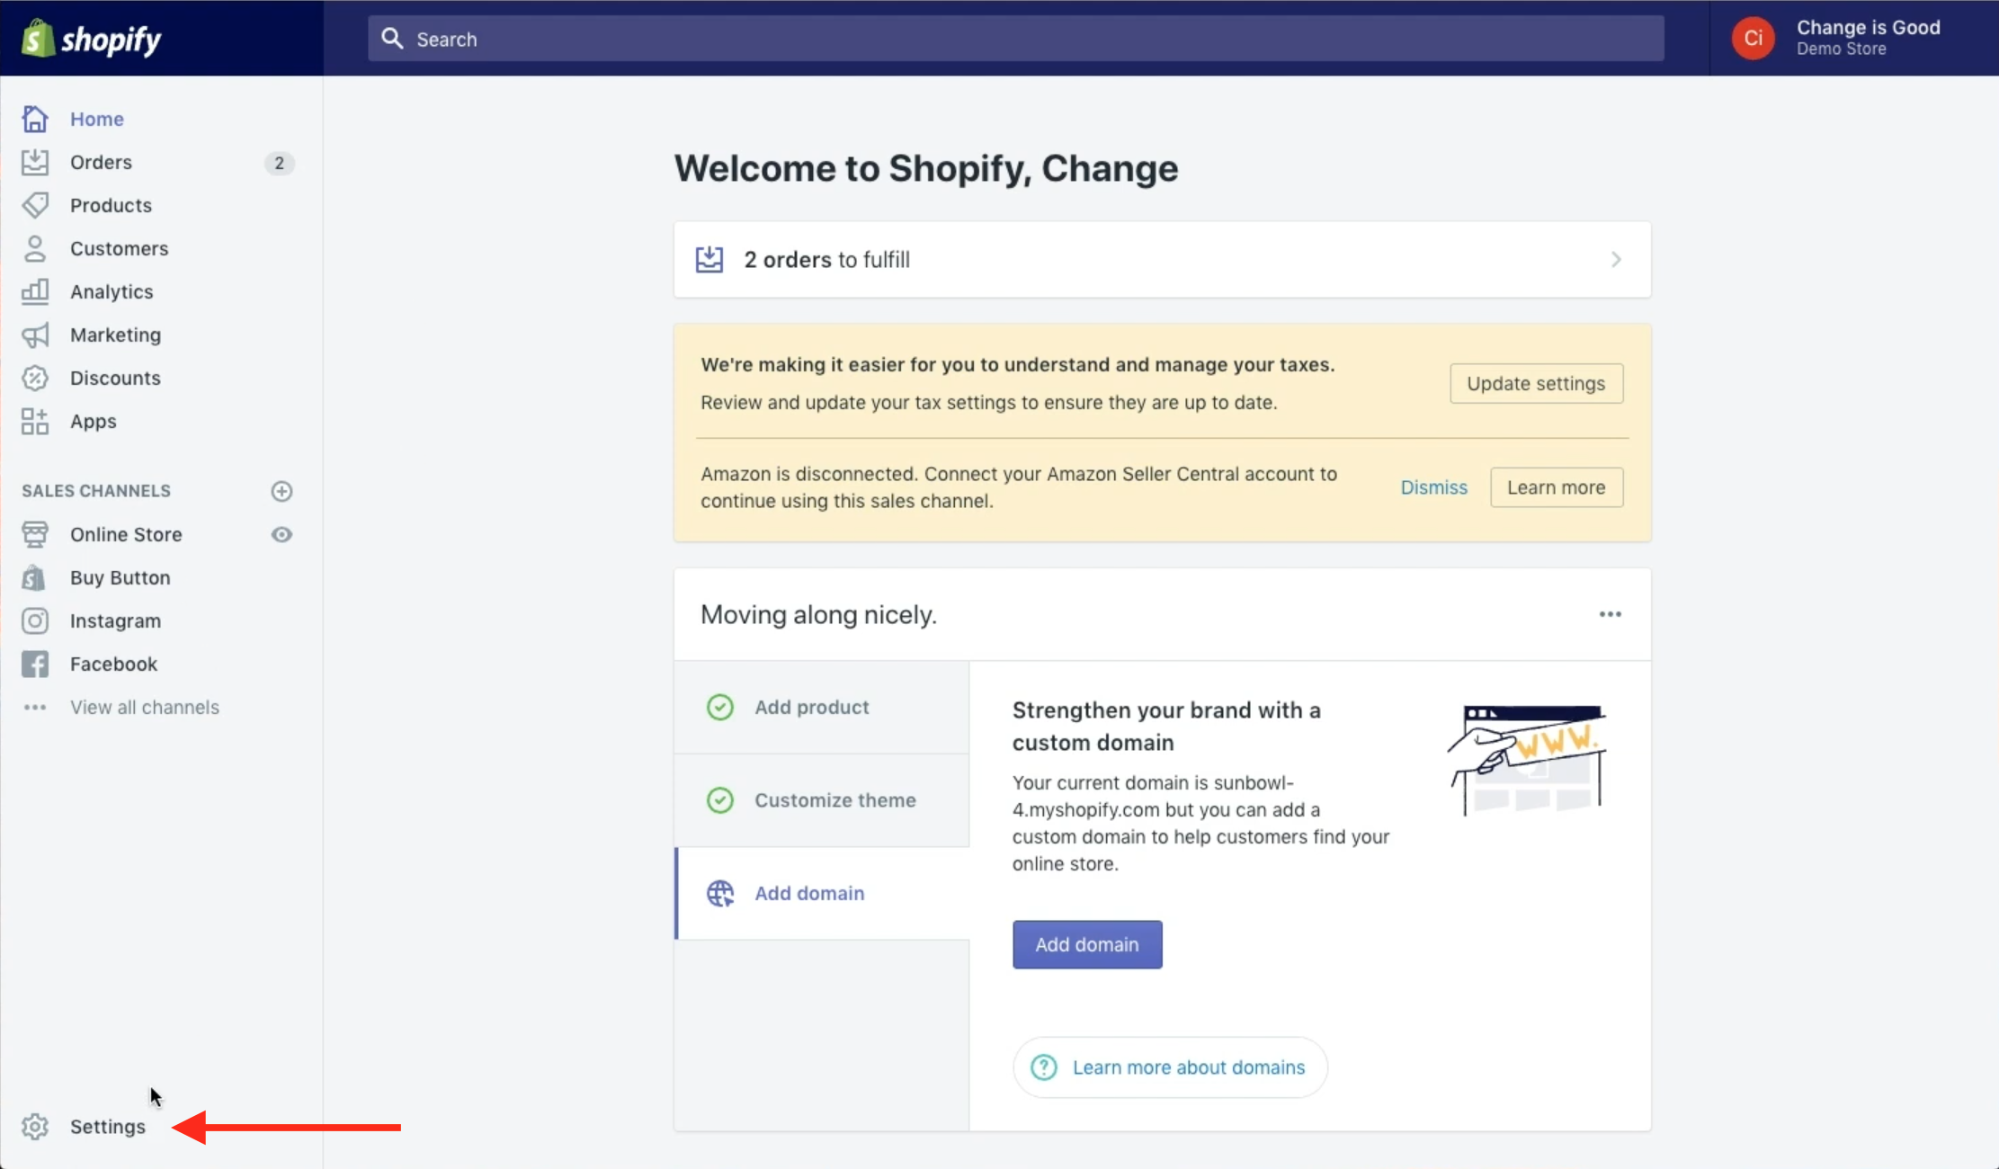 User is clicking Settings at the bottom of the Shopify navigation